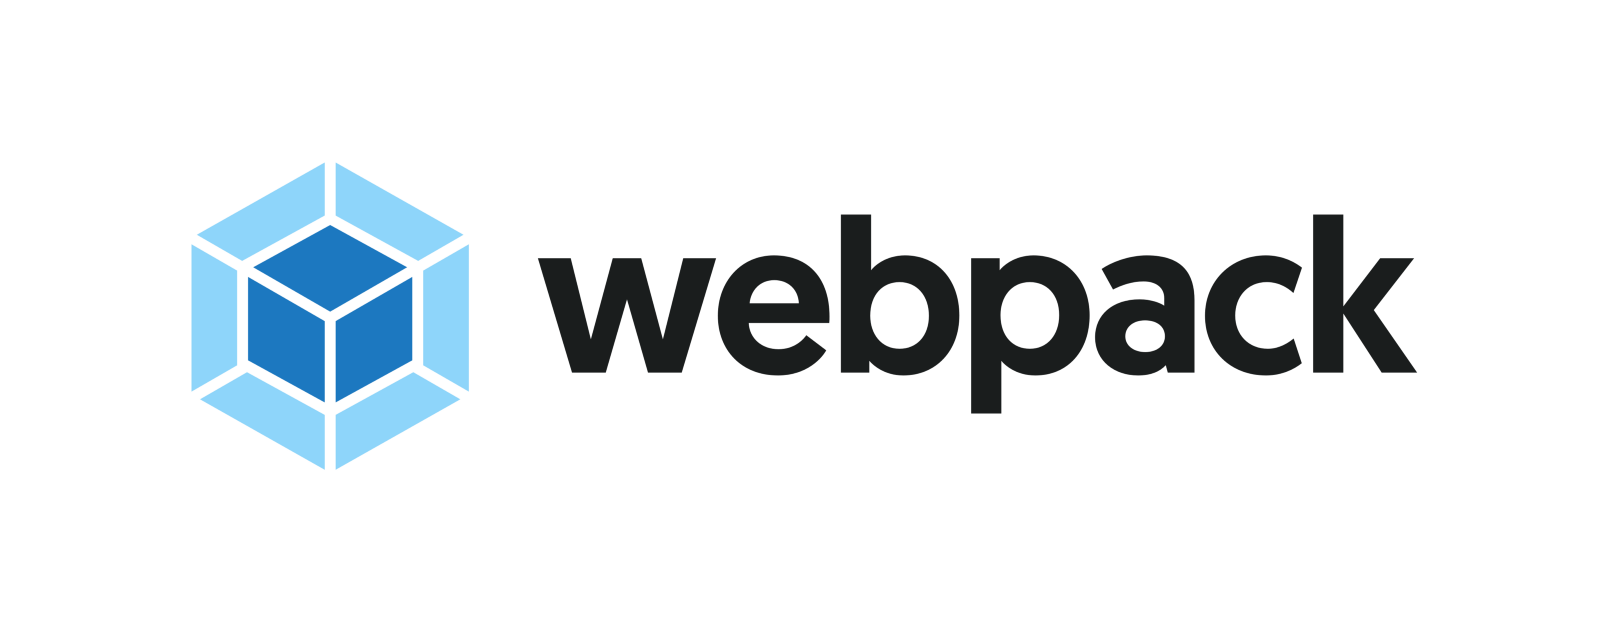 Webpack svg mdl. What is it and